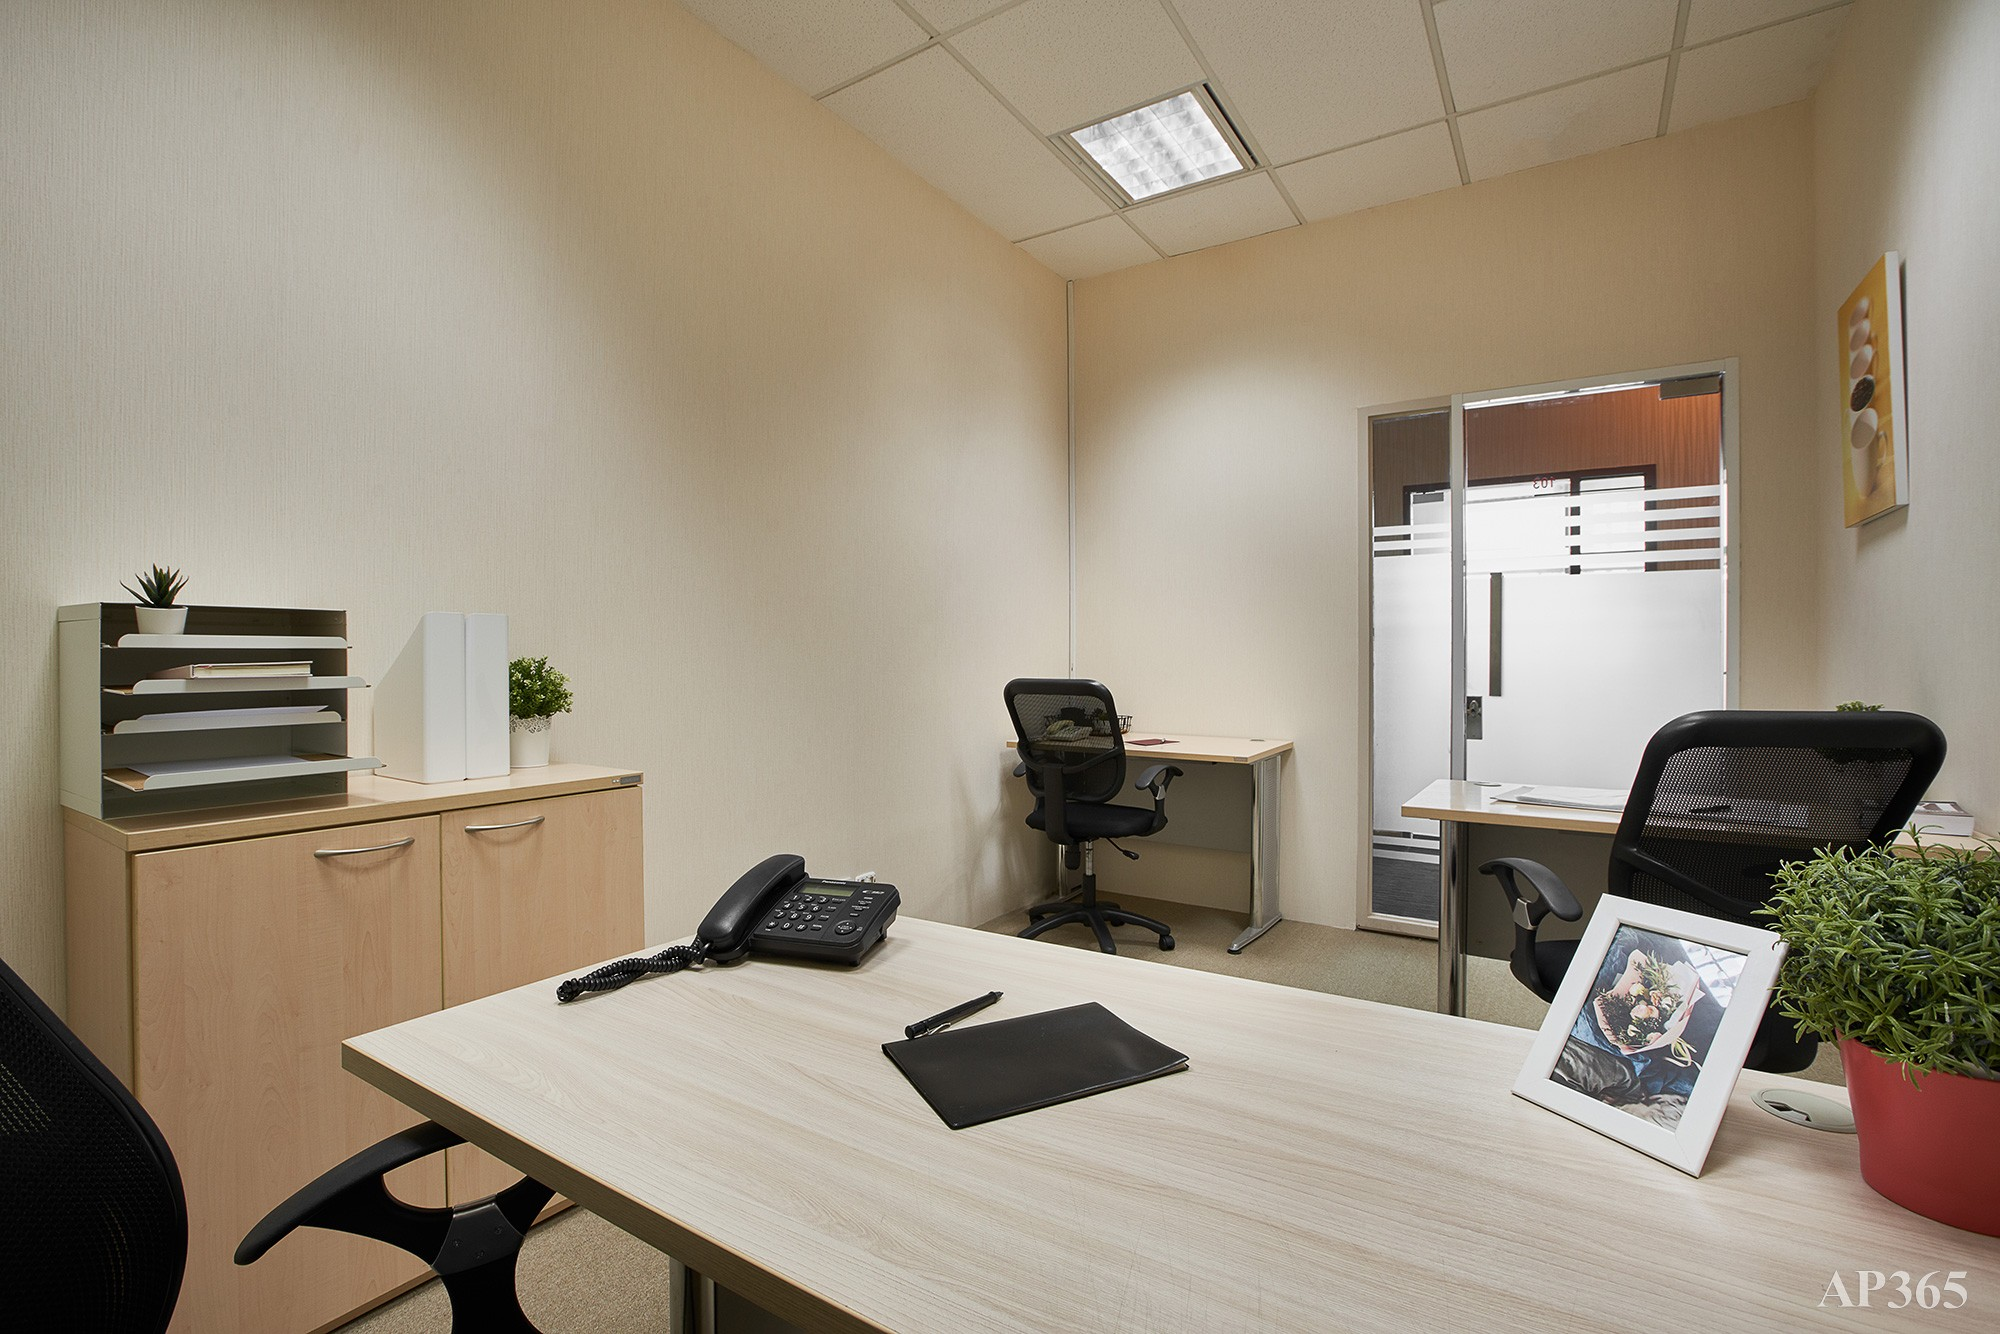 Linuxx Serviced Office - Asia Centre Building 17th Fl. (Room 103) - 5